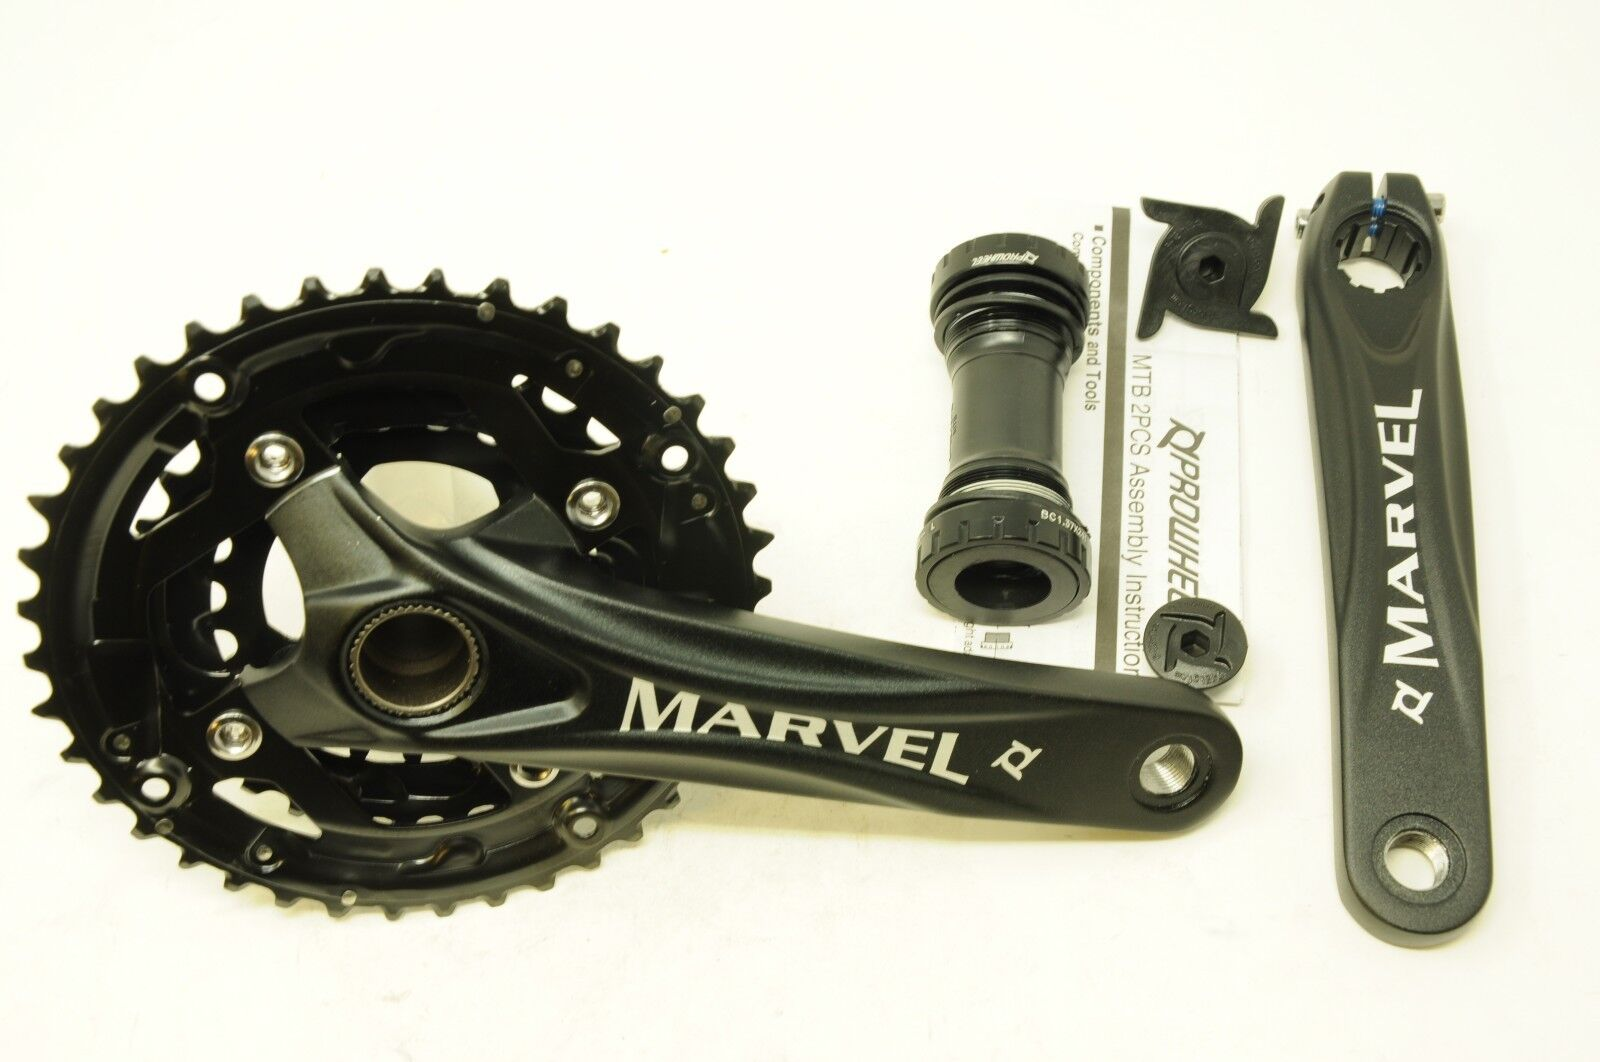 PROWHEEL 10 SPEED MTB CHAINWHEEL SET MARVEL 40 30 22T 170mm TRIPLE CHAINSET NEW